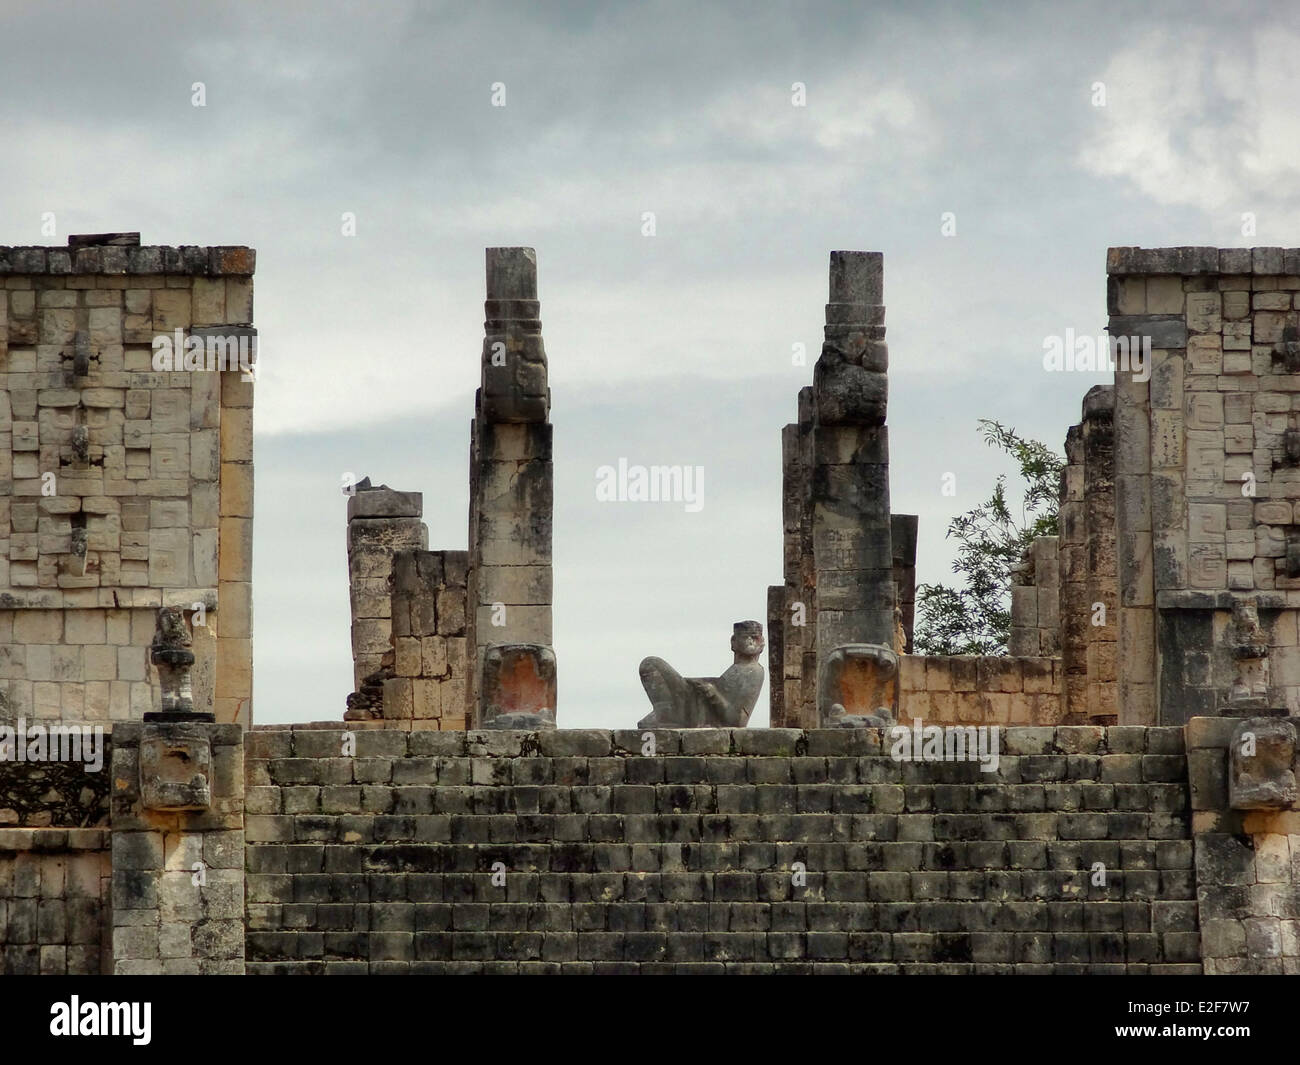 Temple of the Warriors with Chac Mool sculpture in Chichen the Itza archaeological site in Yucatan, Mexico - Stock Image